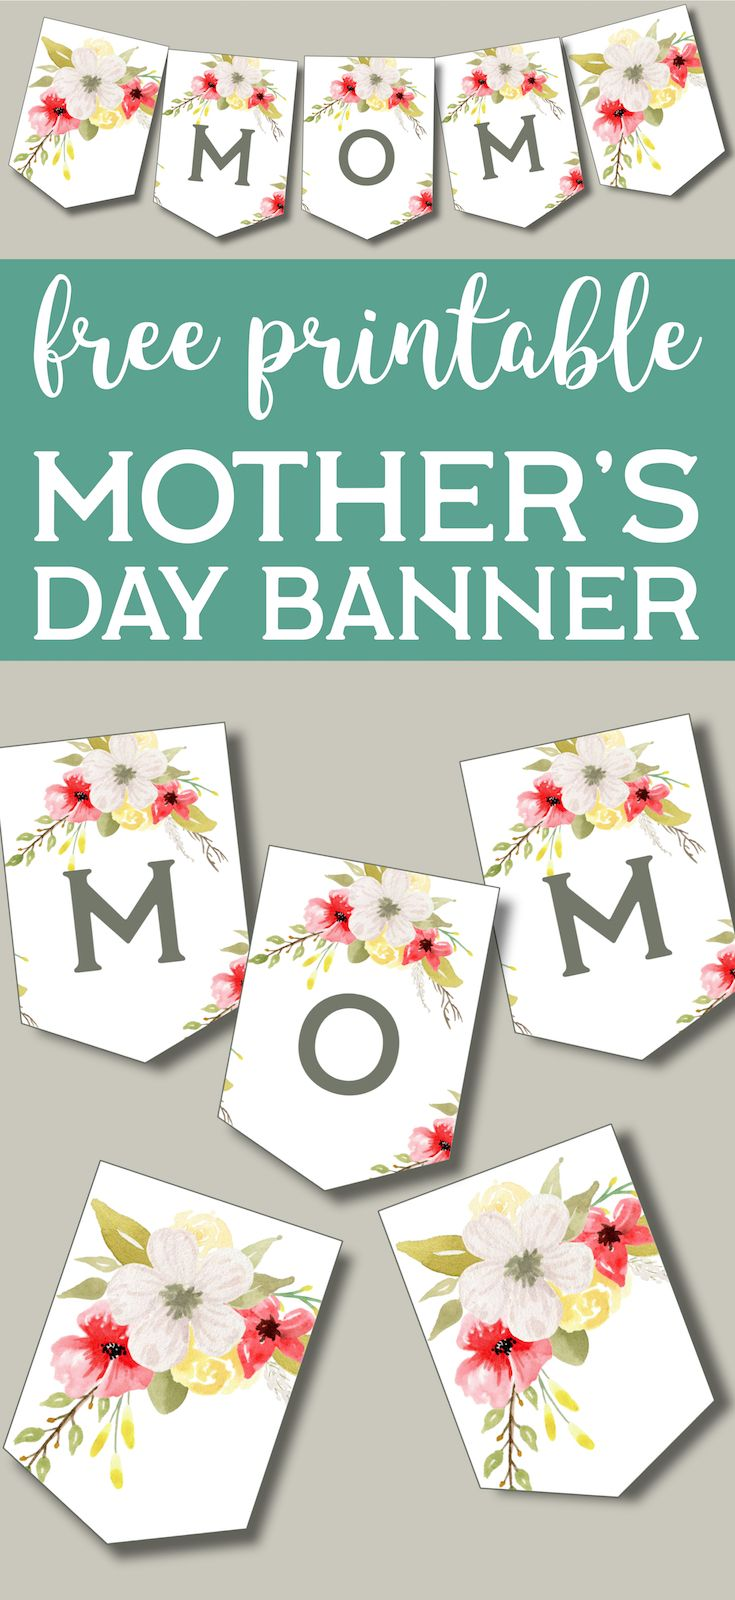 Mother S Day Banner Printable Paper Trail Design Mother S Day Banner Mothers Day Decor Diy Mother S Day Decorations